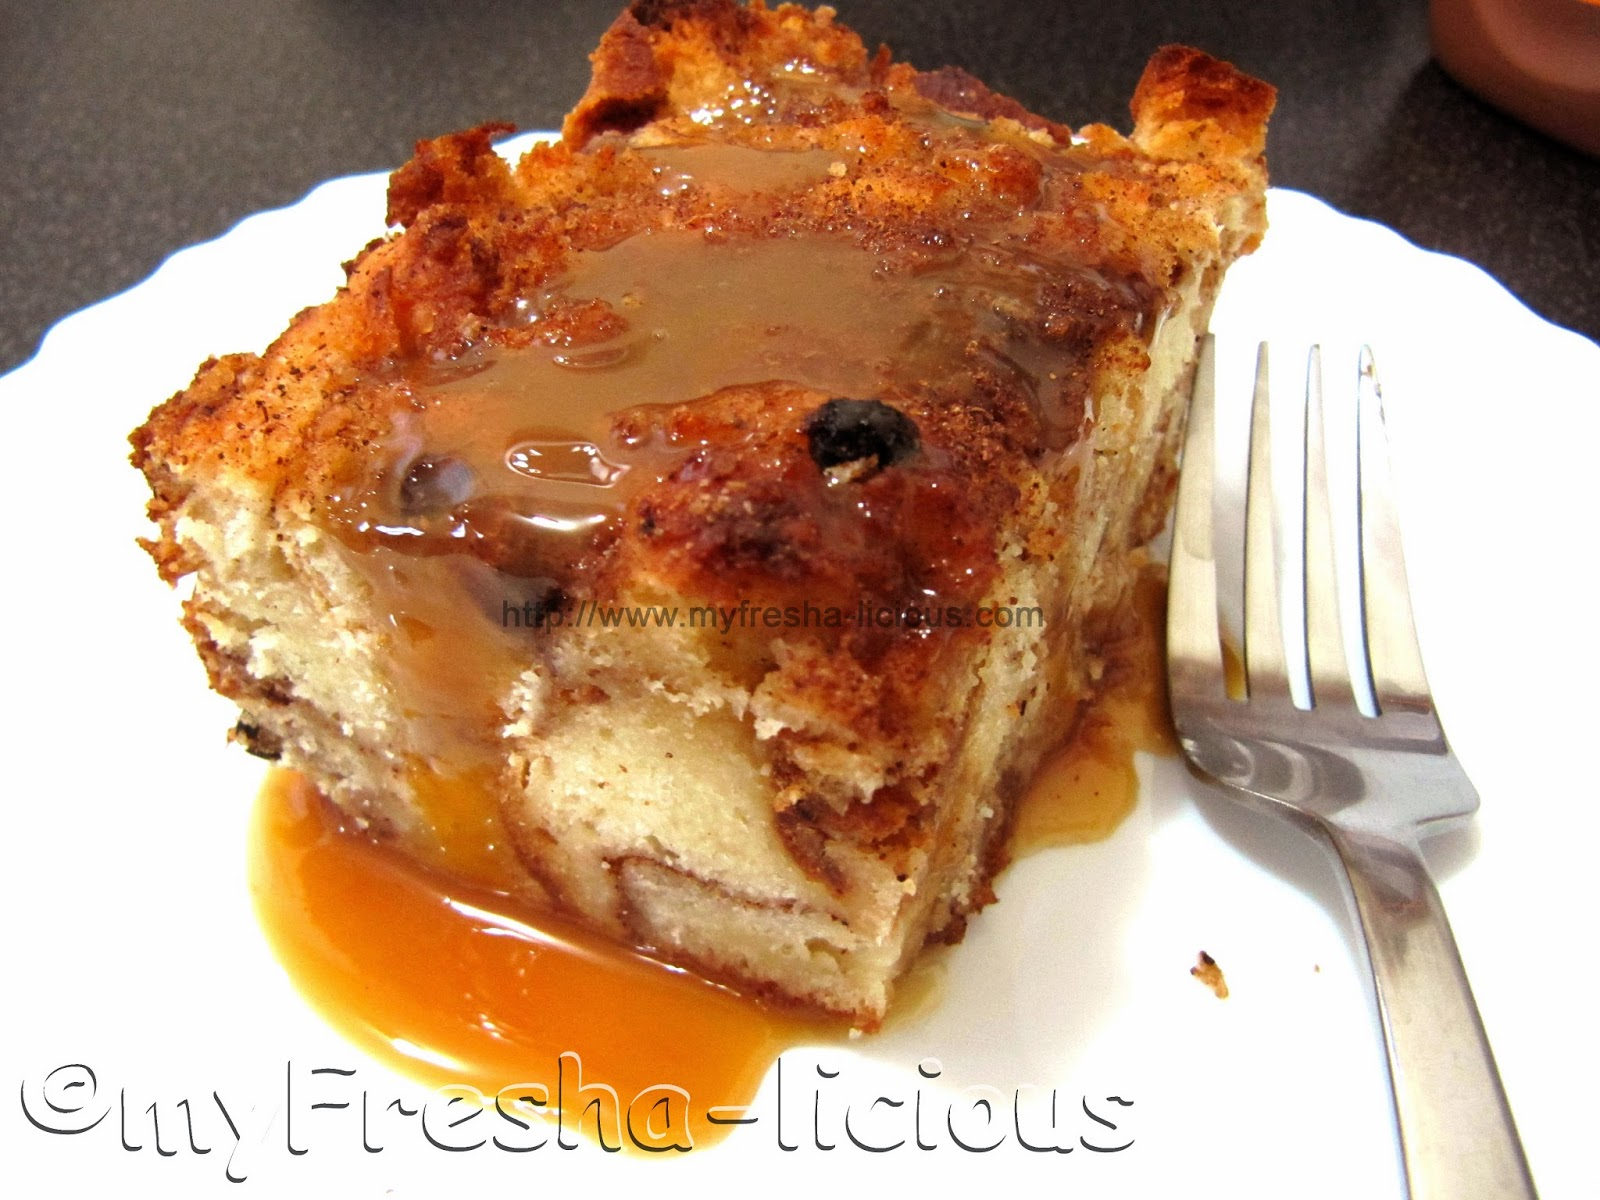 cinnamon bread pudding drizzled with Hershey's caramel sauce